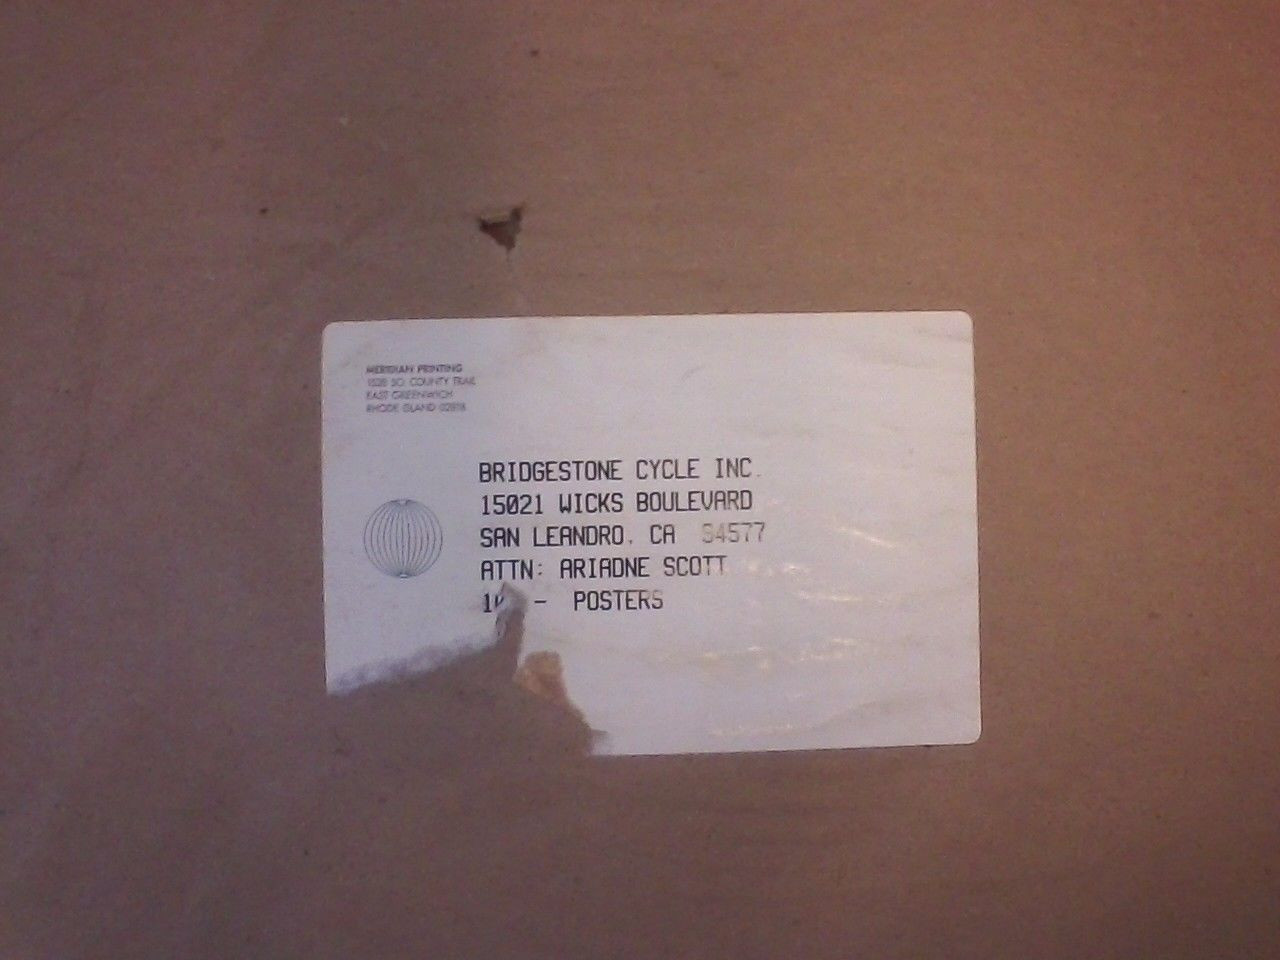 Bridgestone - Saddle Up Original Poster - Shipping Label  FOR REFERENCE ONLY